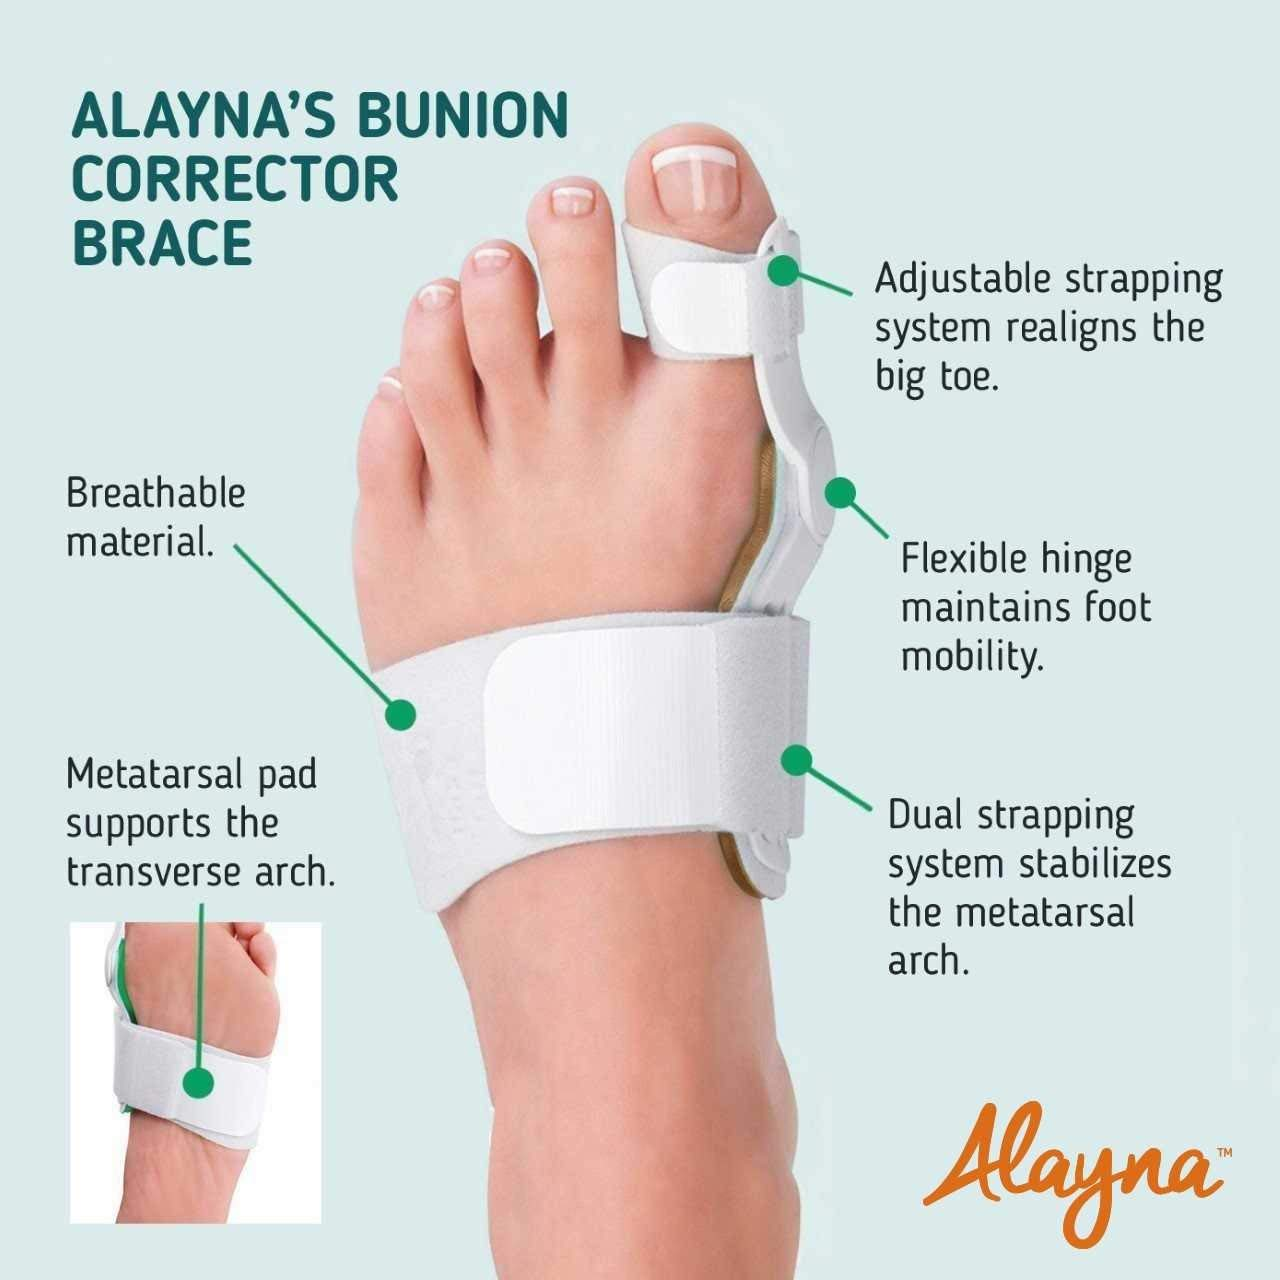 Bunion Corrector and Bunion Relief Orthopedic Bunion Splint Pads for Men and Women Hammer Toe Straightener and Bunion Protector Cushions- Relieve Hallux Valgus Foot Pain and Soothe Sore Bunions by Alayna (Image #4)